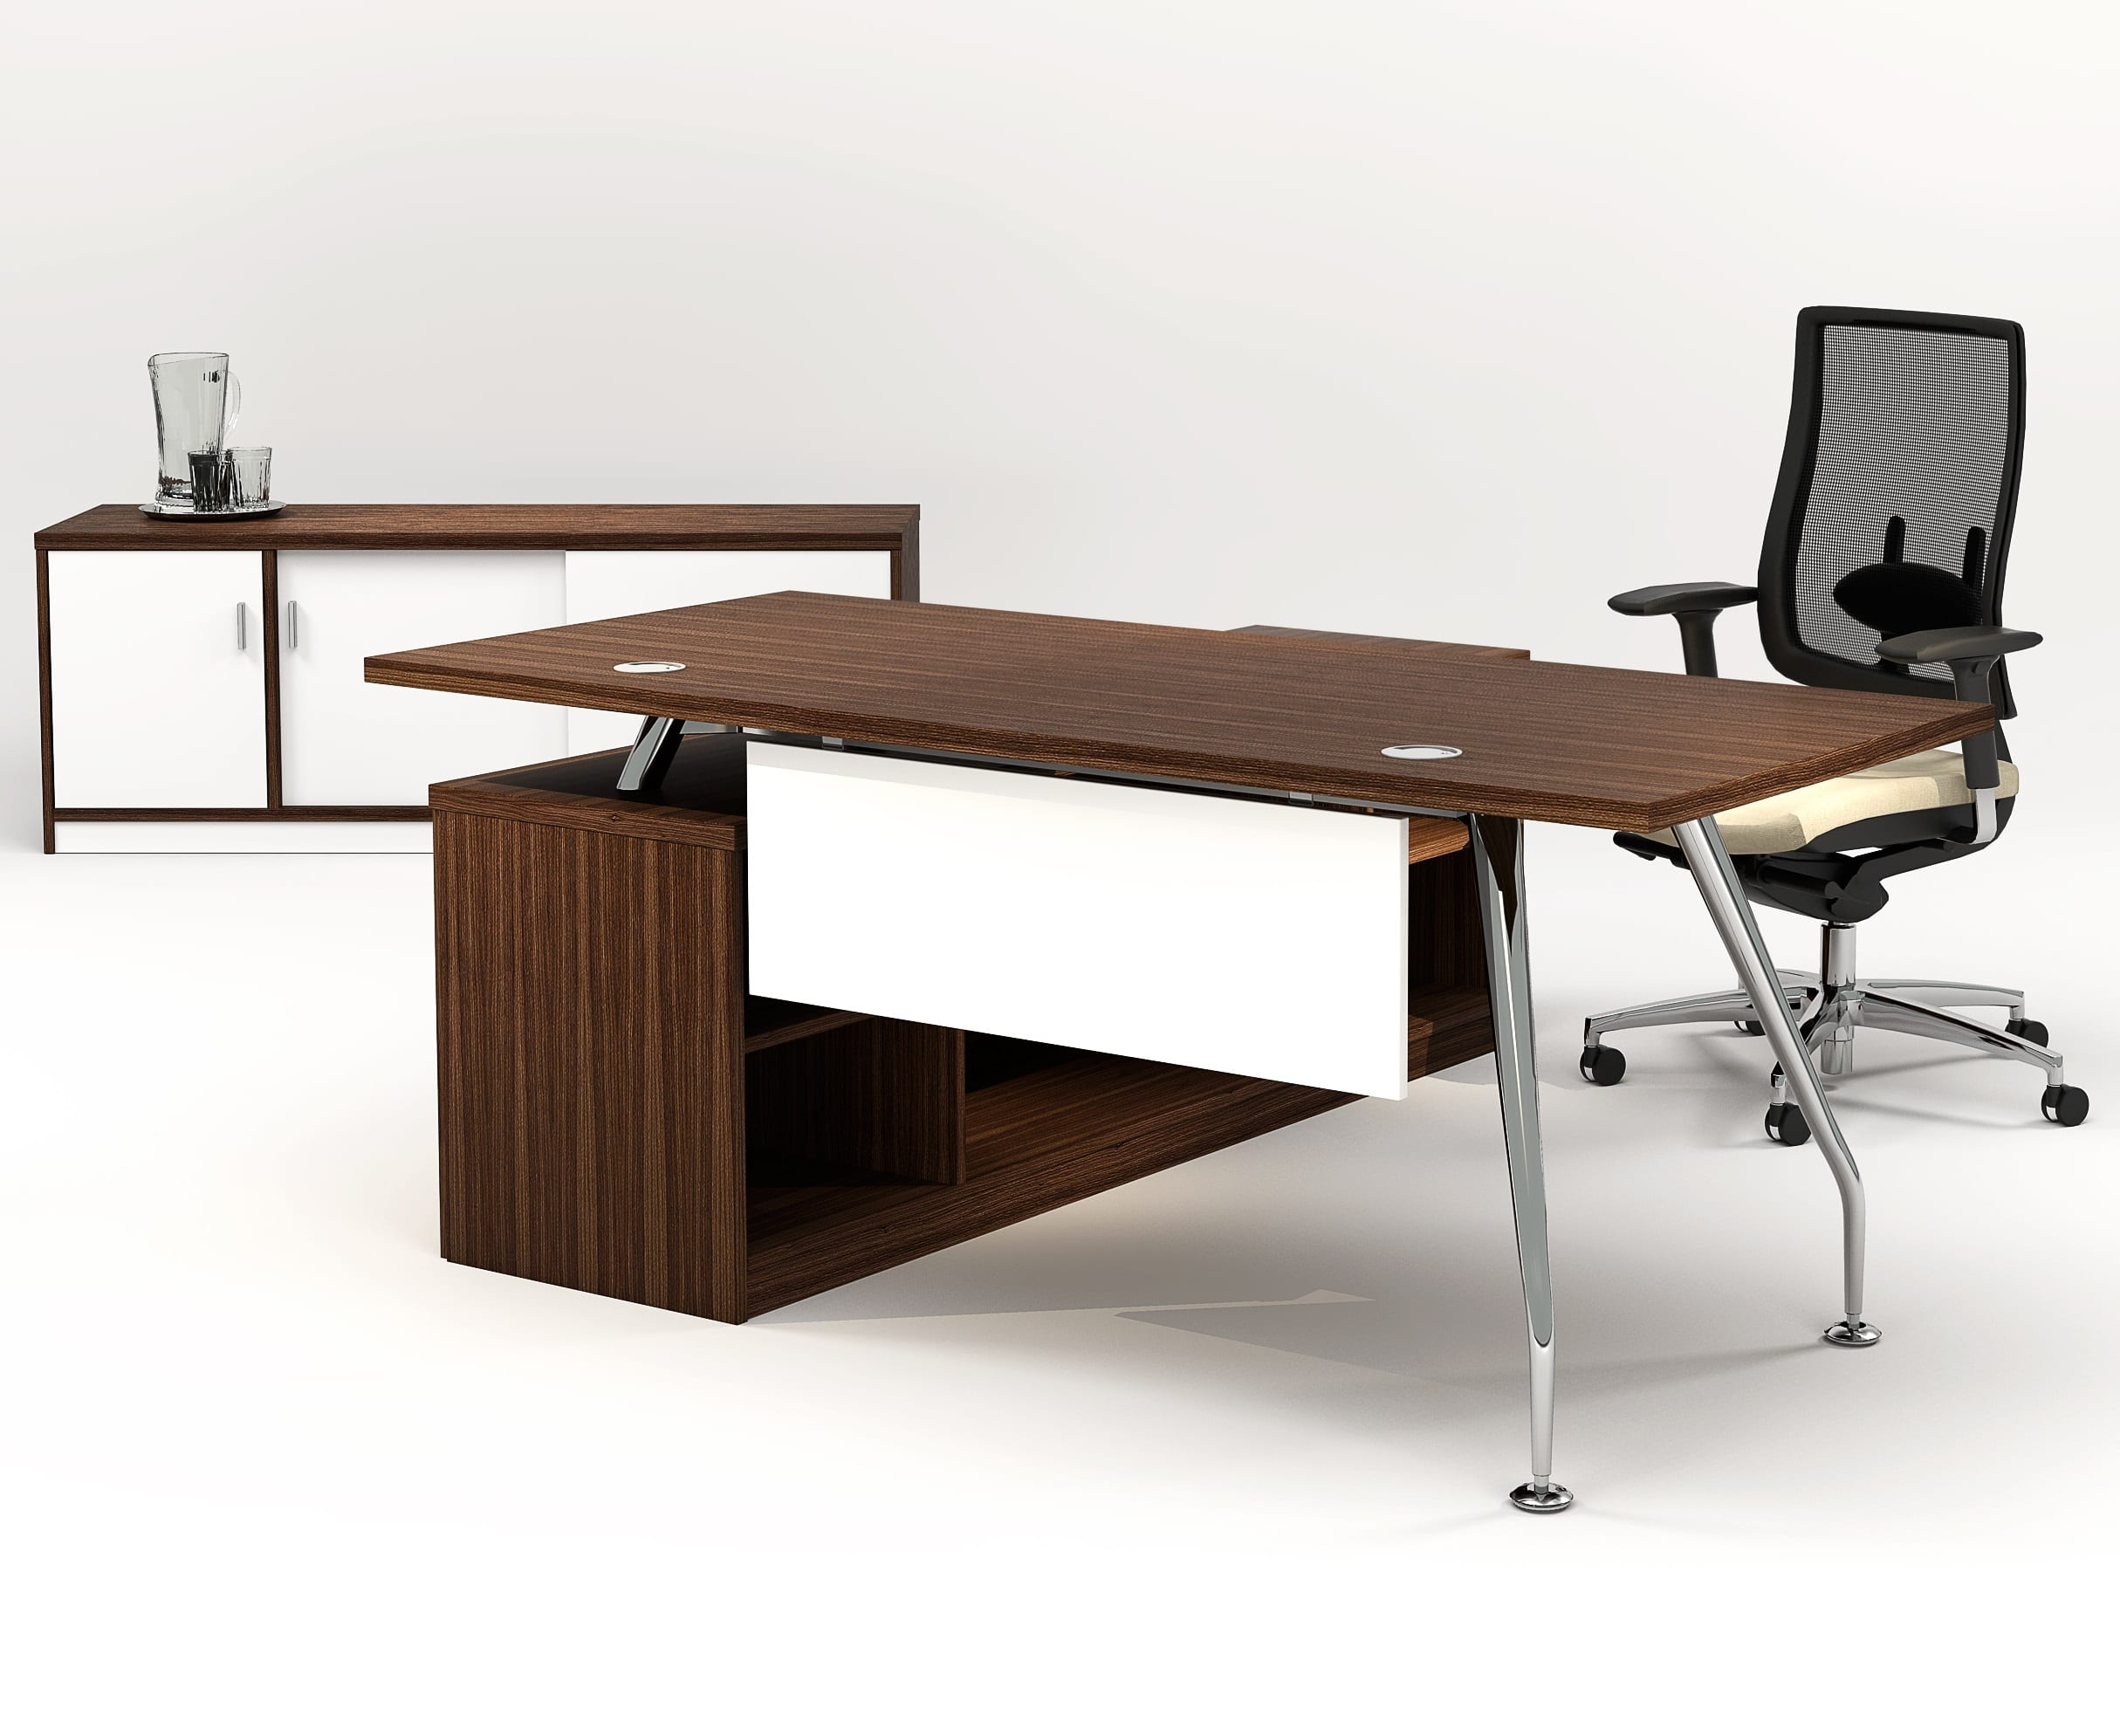 ZENITH 1800 EXEC FLYOVER DESK OPEN MODESTY – WALNUT